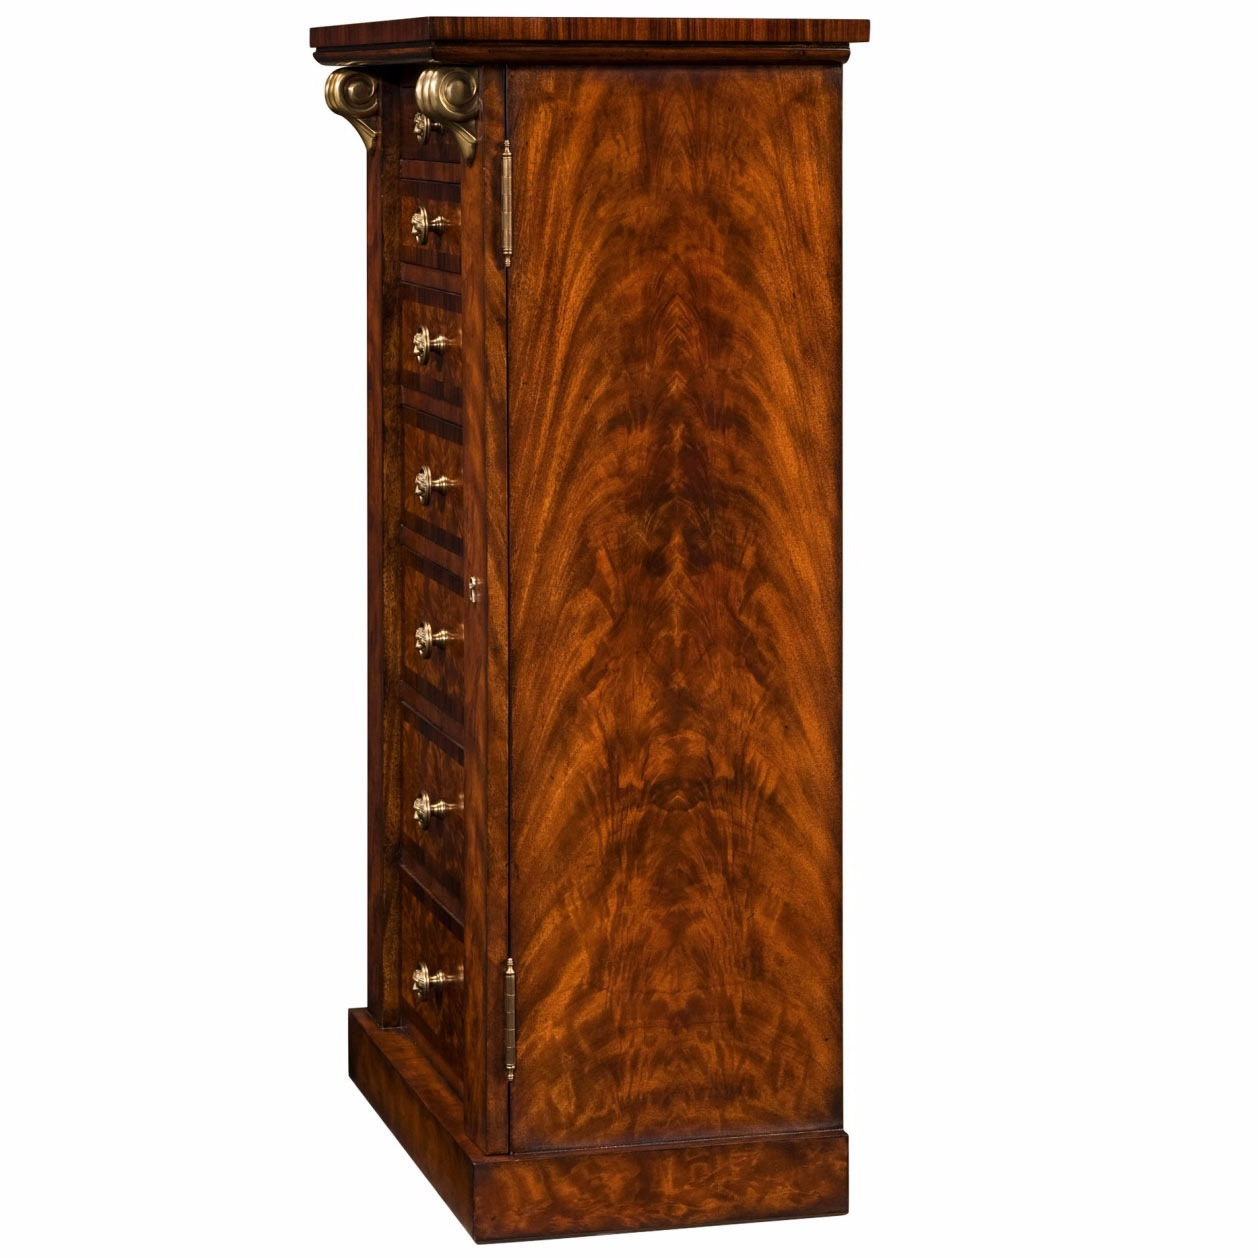 A mahogany and rosewood crossbanded Wellington chest